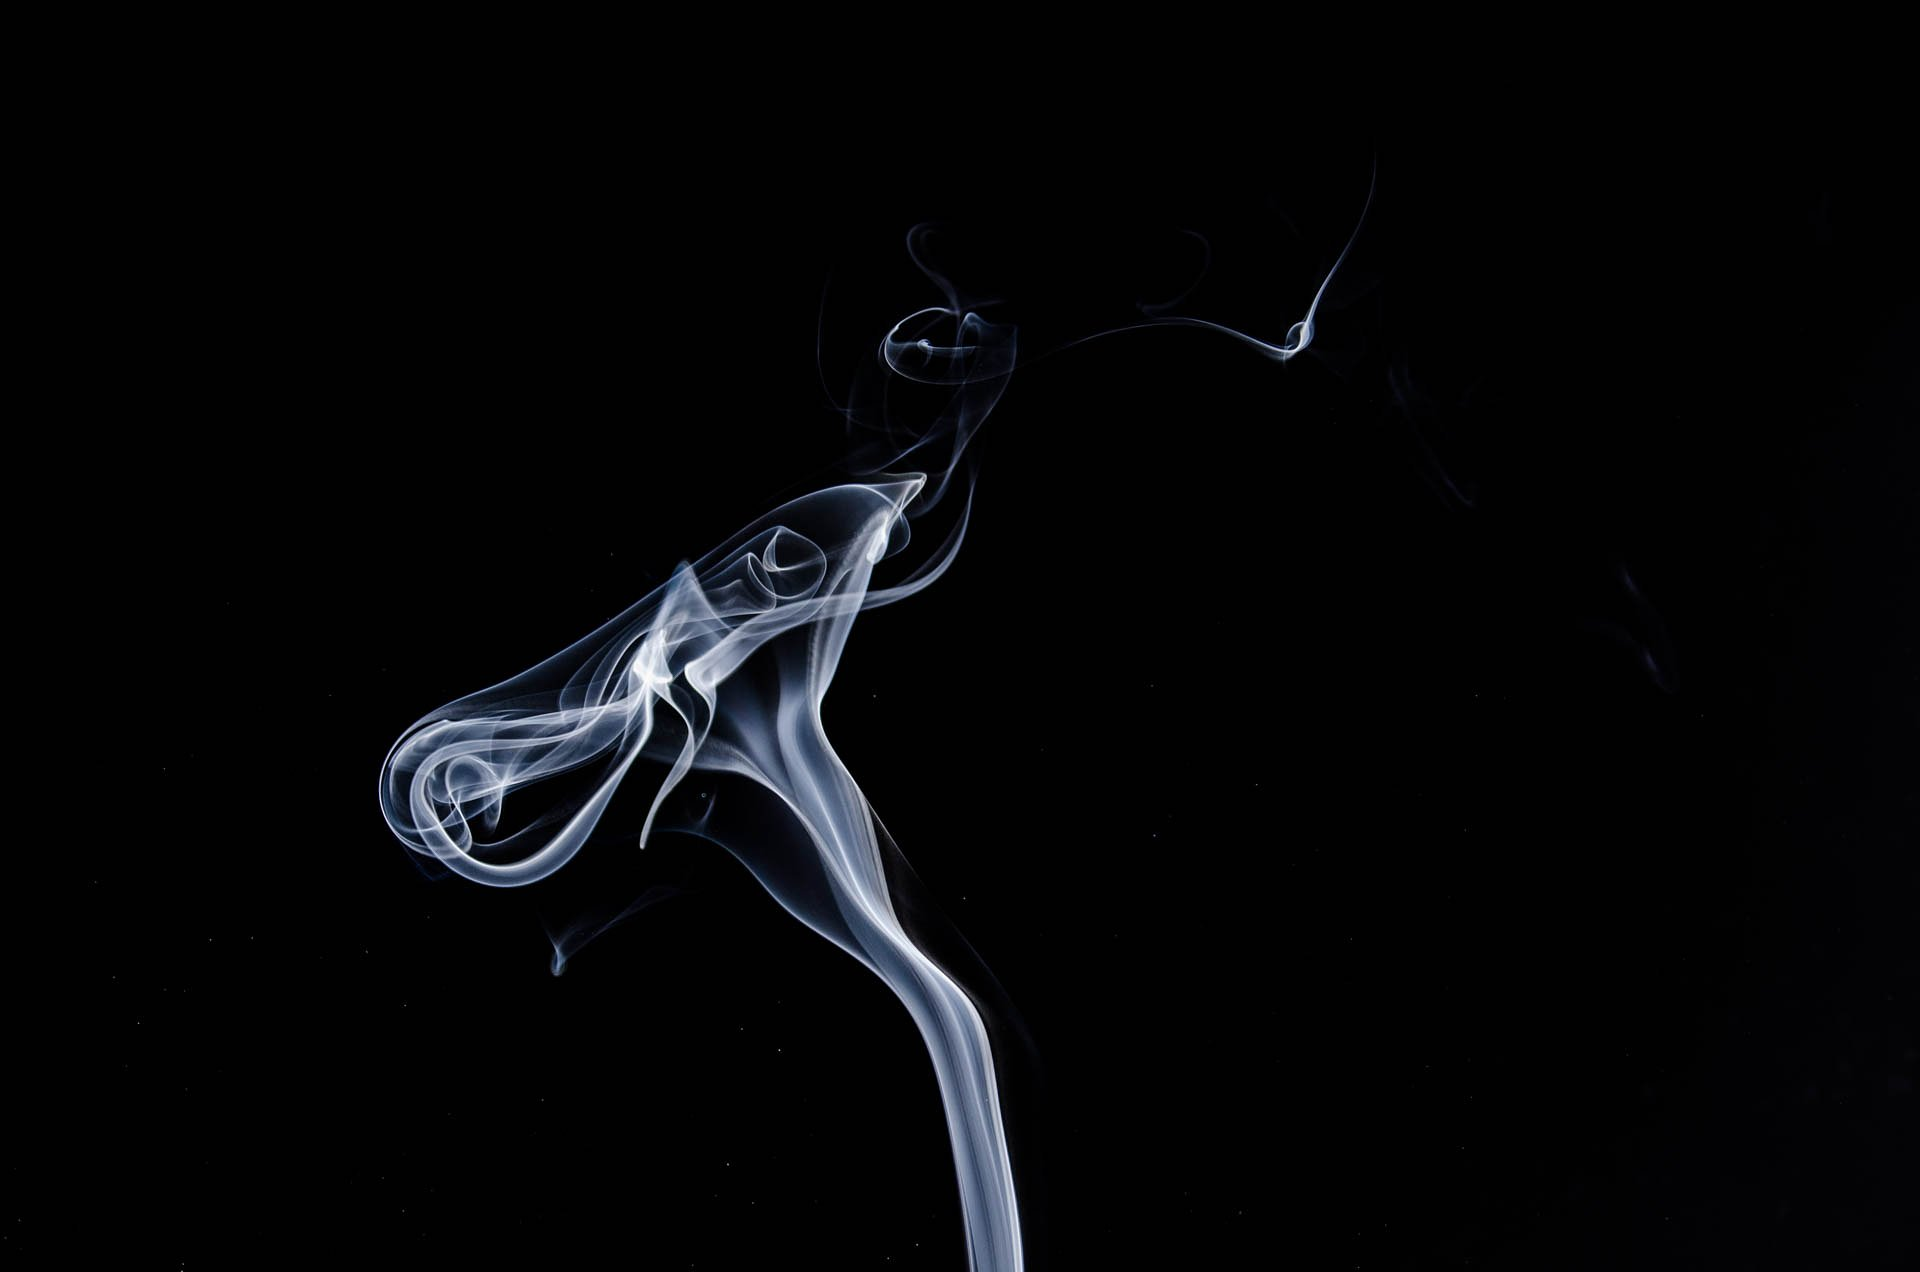 Men younger than 50: The more you smoke, the more you stroke